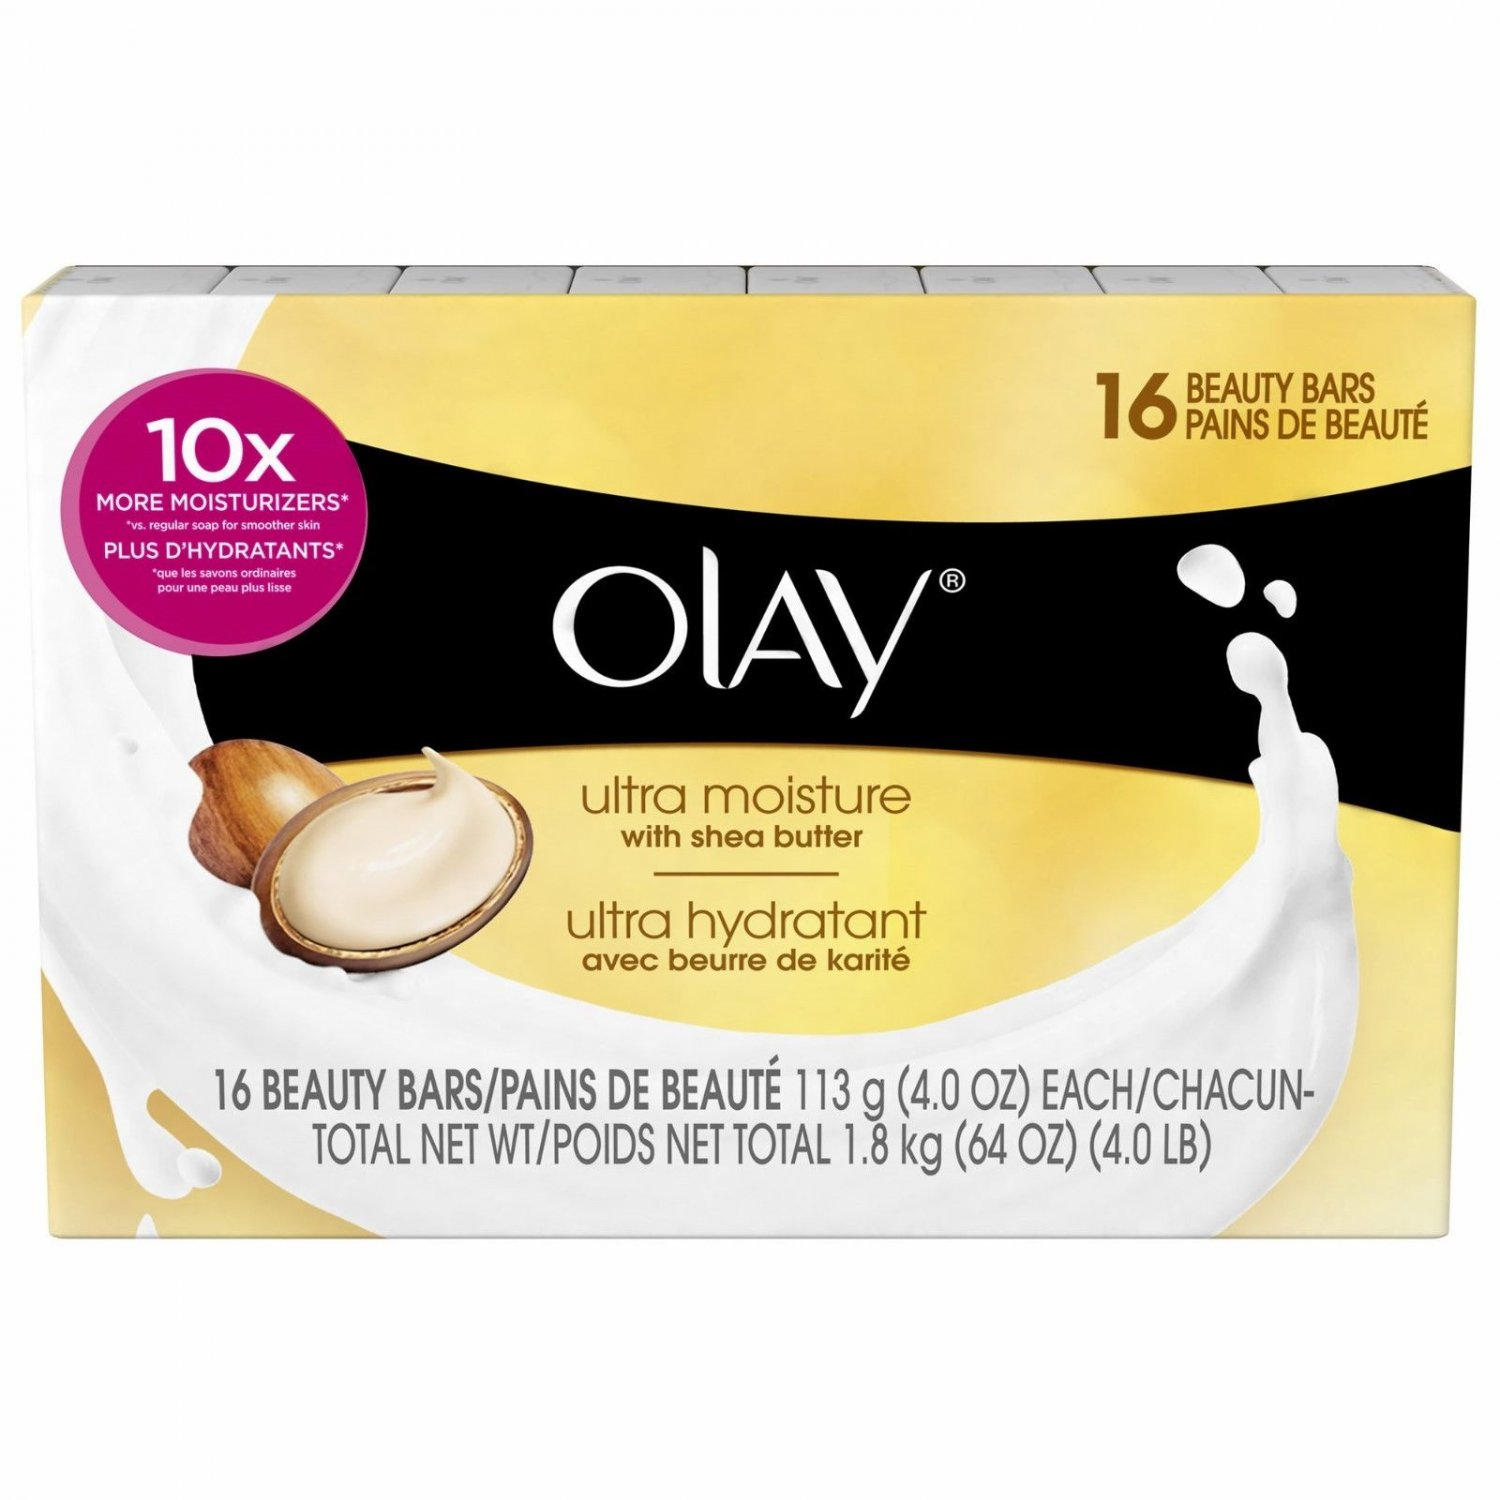 Olay Ultra Moisture Beauty Bars Soap, 16 ct./4 oz.